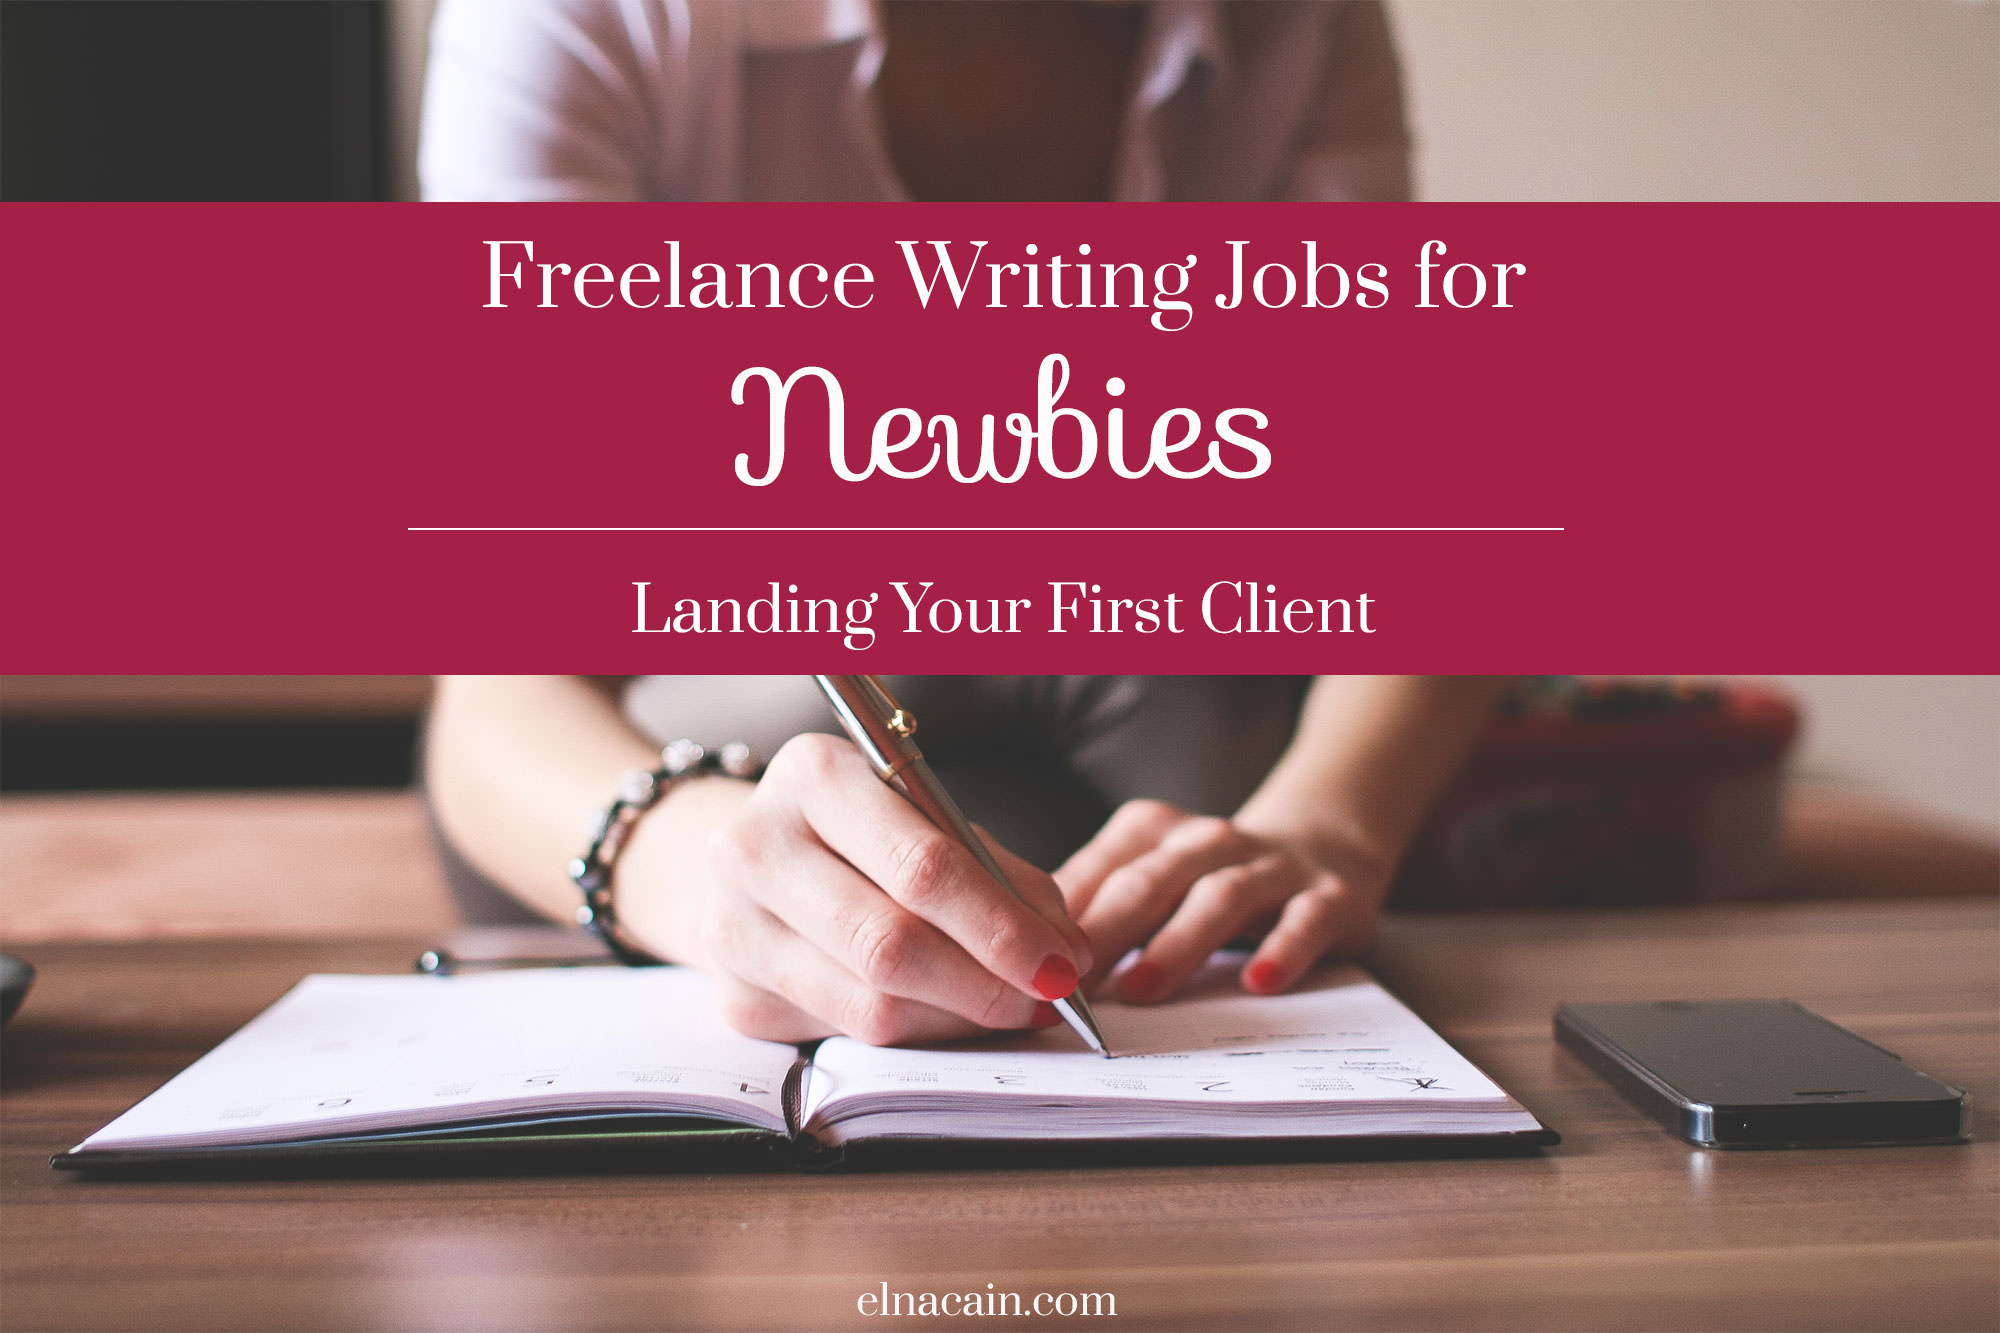 paid lance writing online ways to lance writing jobs as a  ways to lance writing jobs as a beginner elna cain lance writing jobs for newbies landing